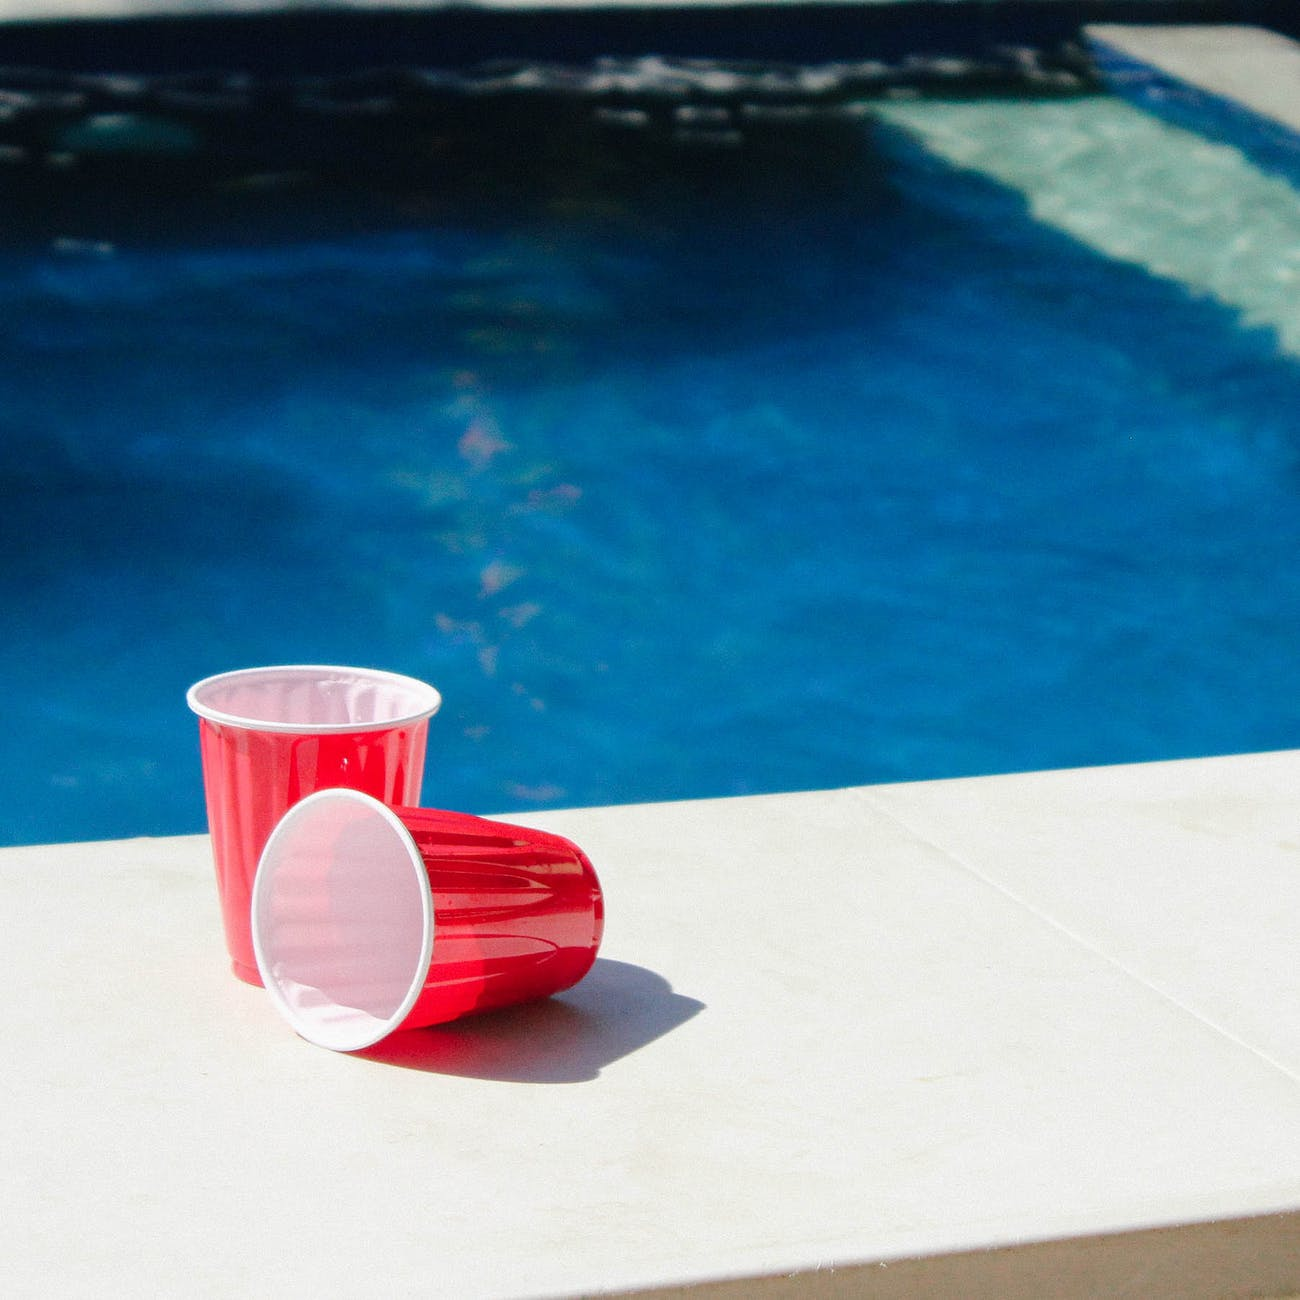 red solo beer pong cups by a pool